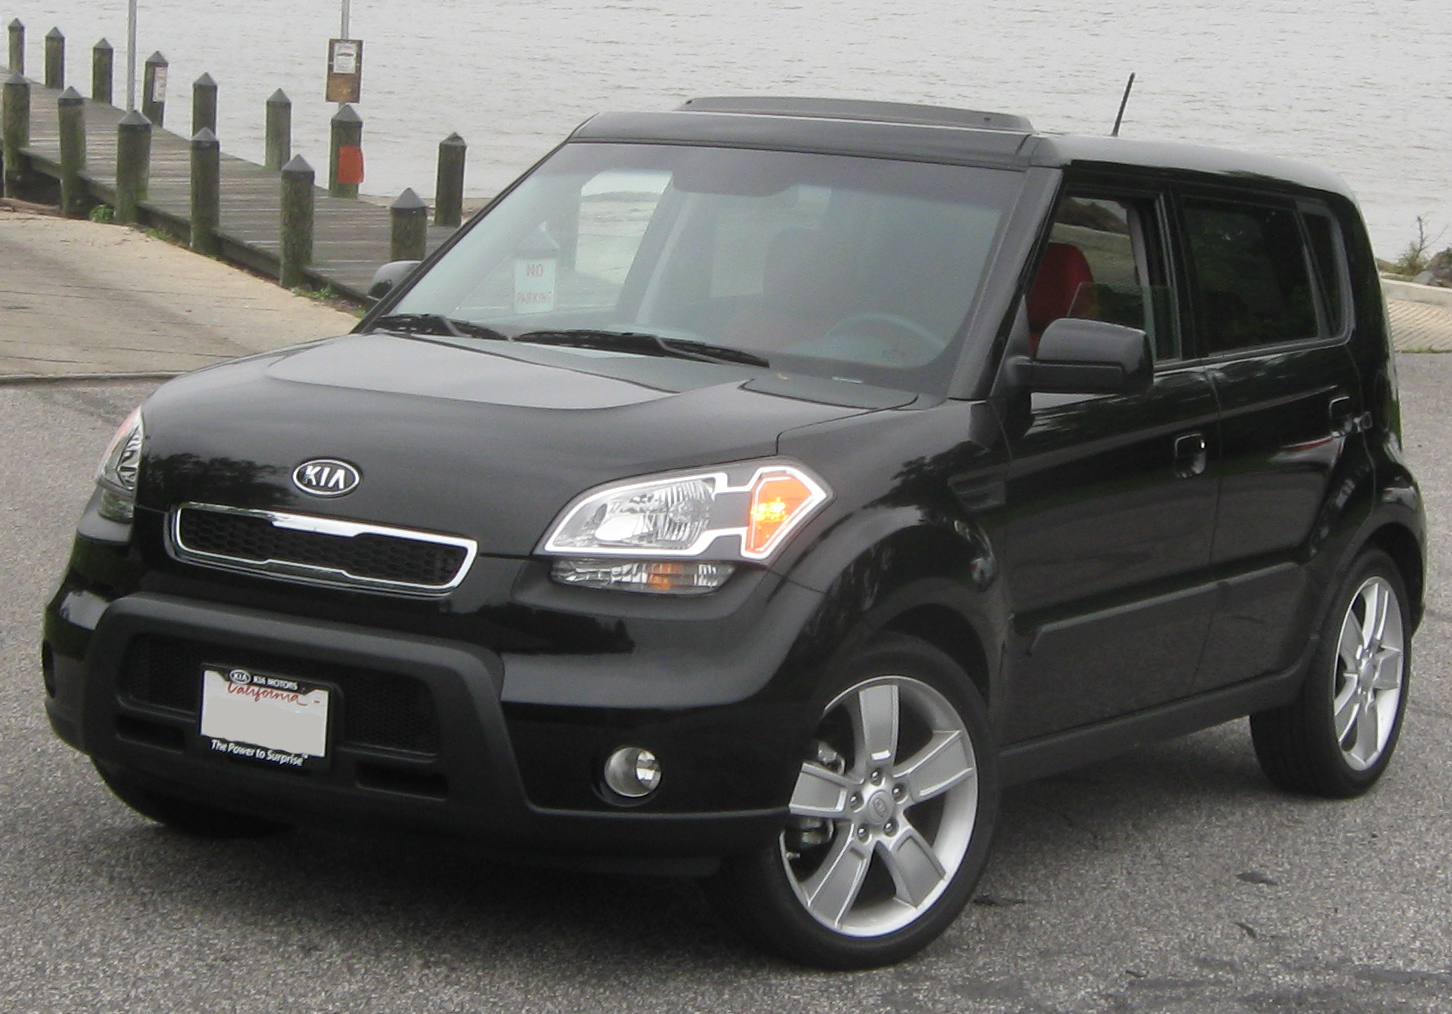 file 2010 kia soul sport wikipedia. Black Bedroom Furniture Sets. Home Design Ideas